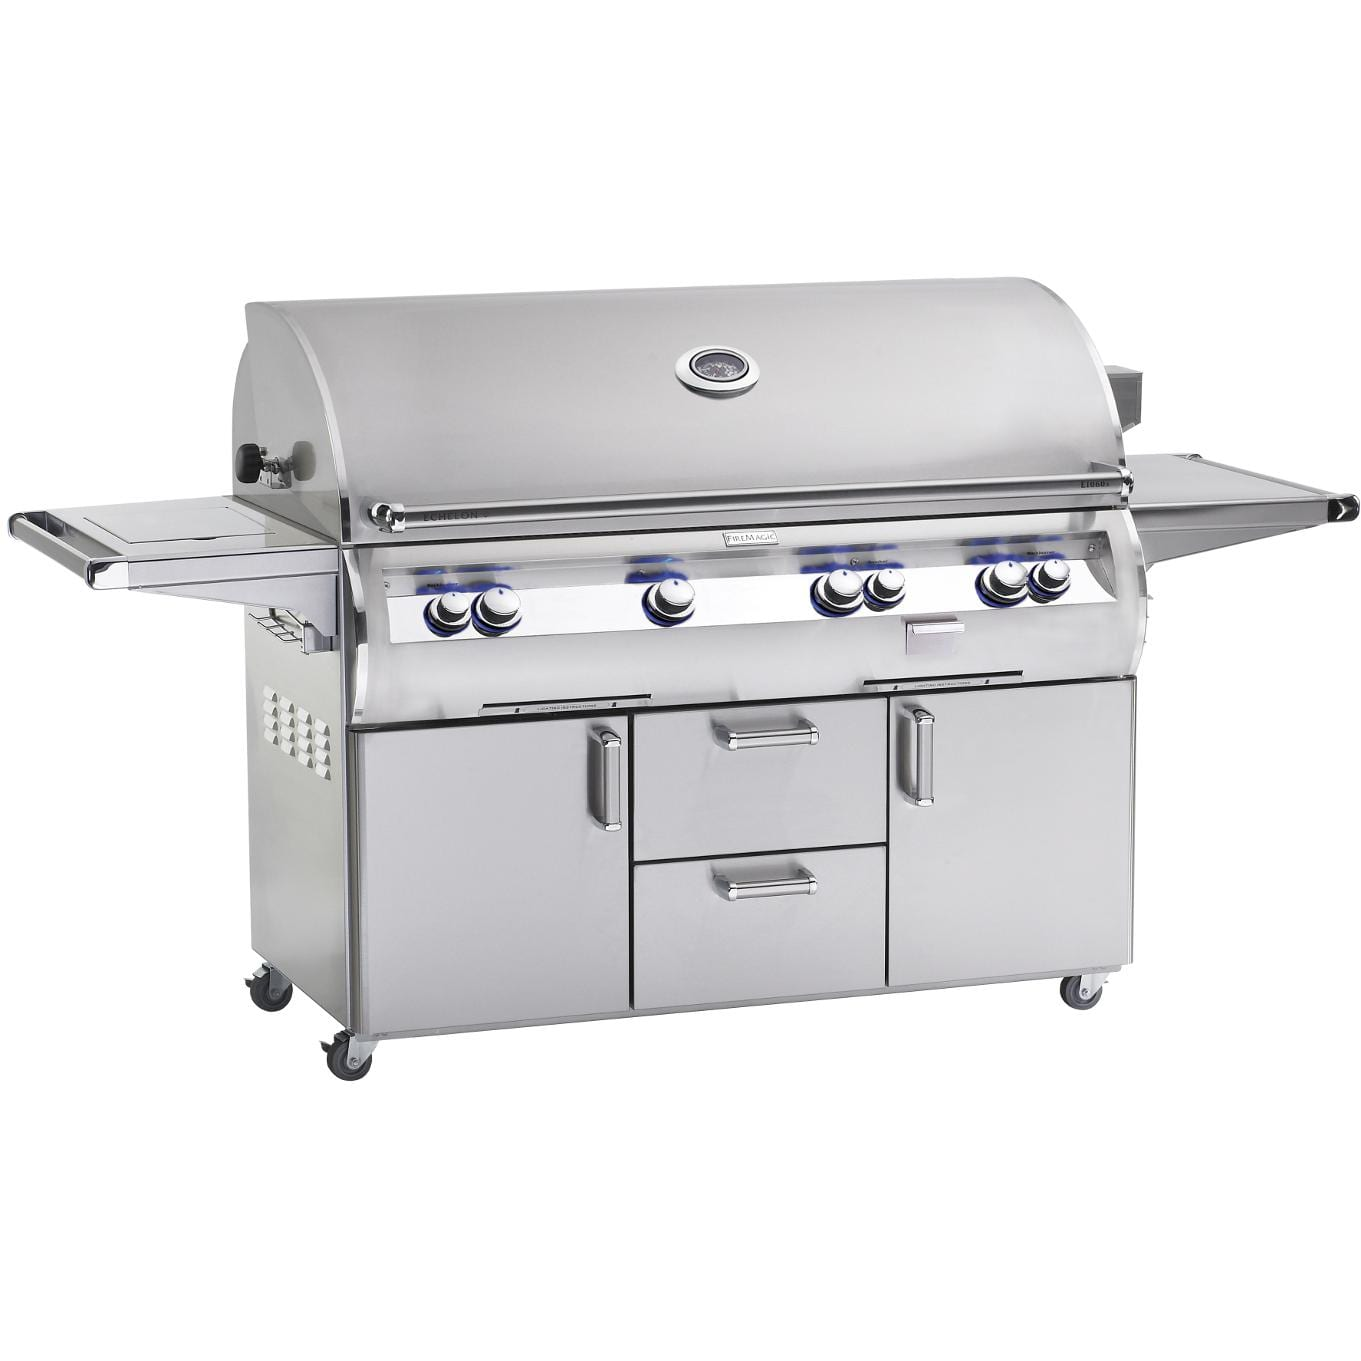 Fire Magic Echelon Diamond E1060s 48 Inch A Series Freestanding Grill